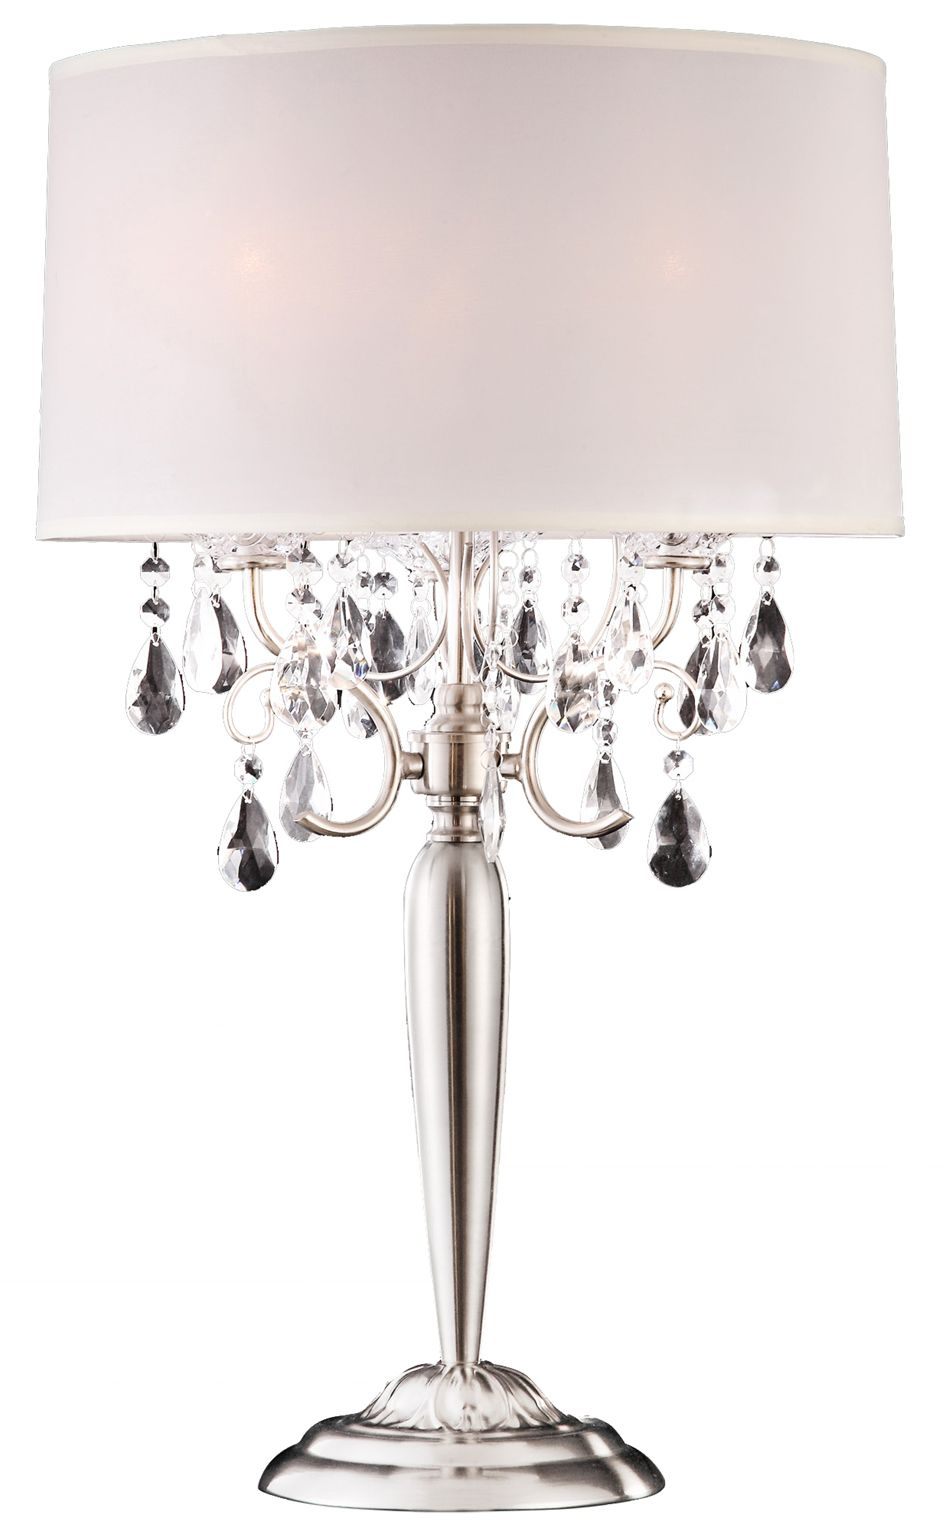 Moxie Real Crystal Table Lamp 16 Lx16 Wx30 H Table Lamp Lamp